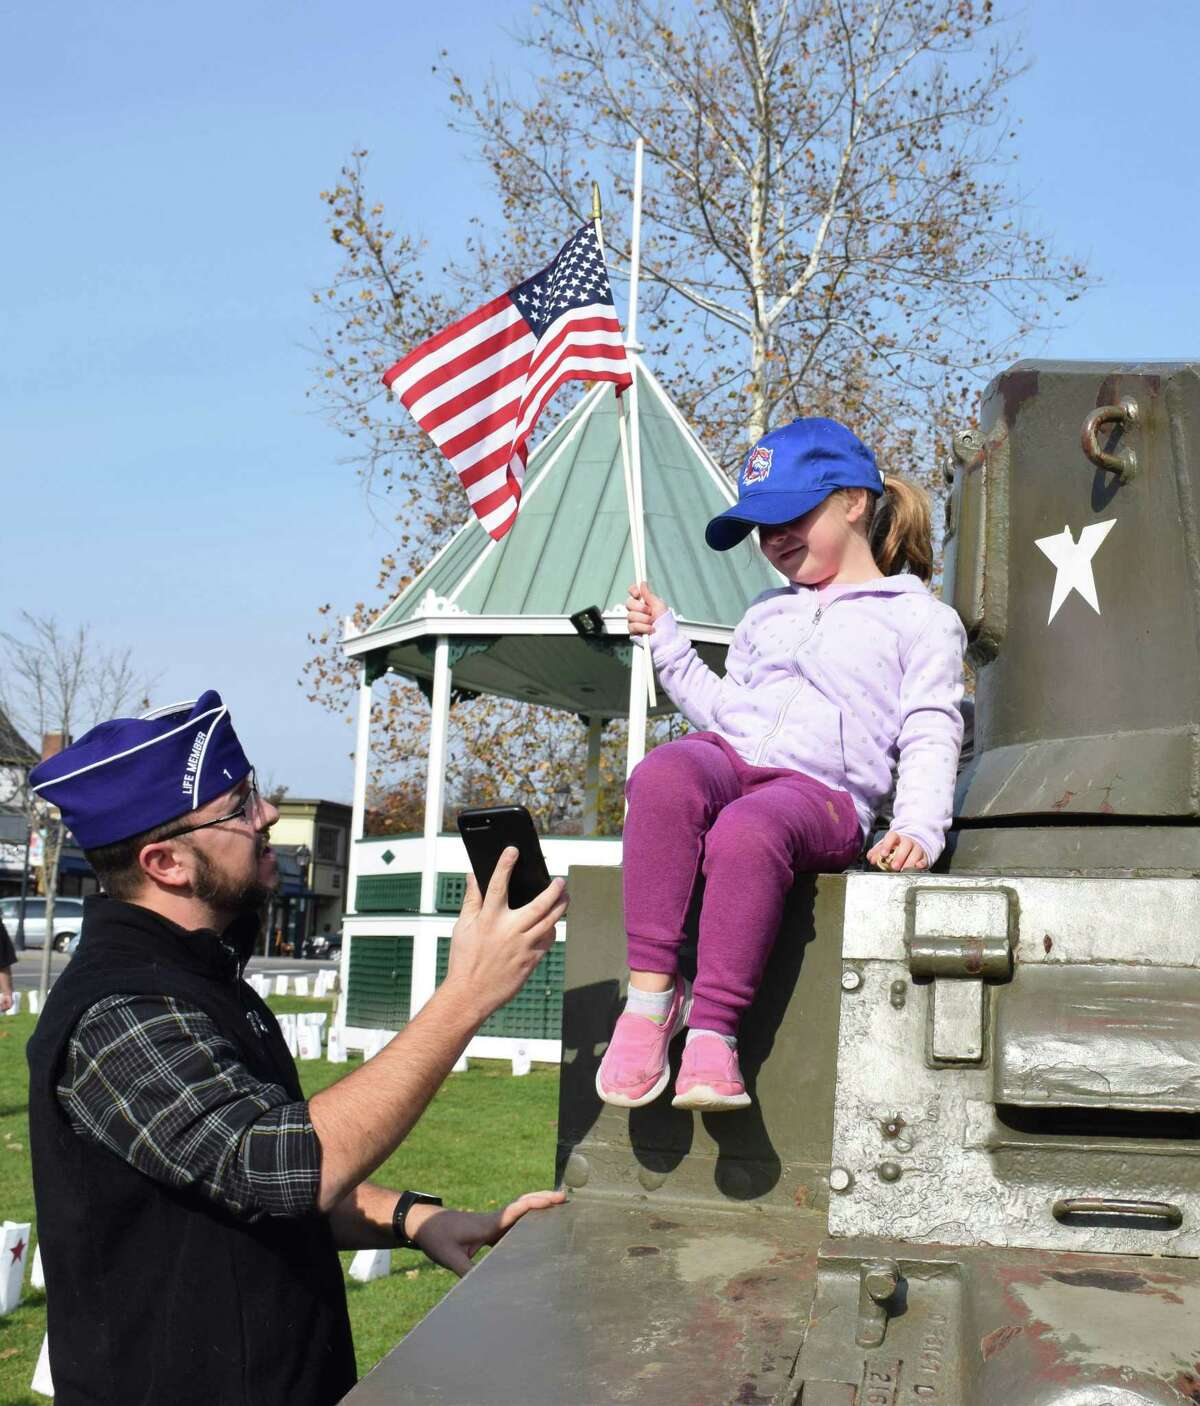 Veteran Matthew Hayes shows his daughter, Eliza, 4, the photo he took of her atop the tank on the Green before the ceremony.